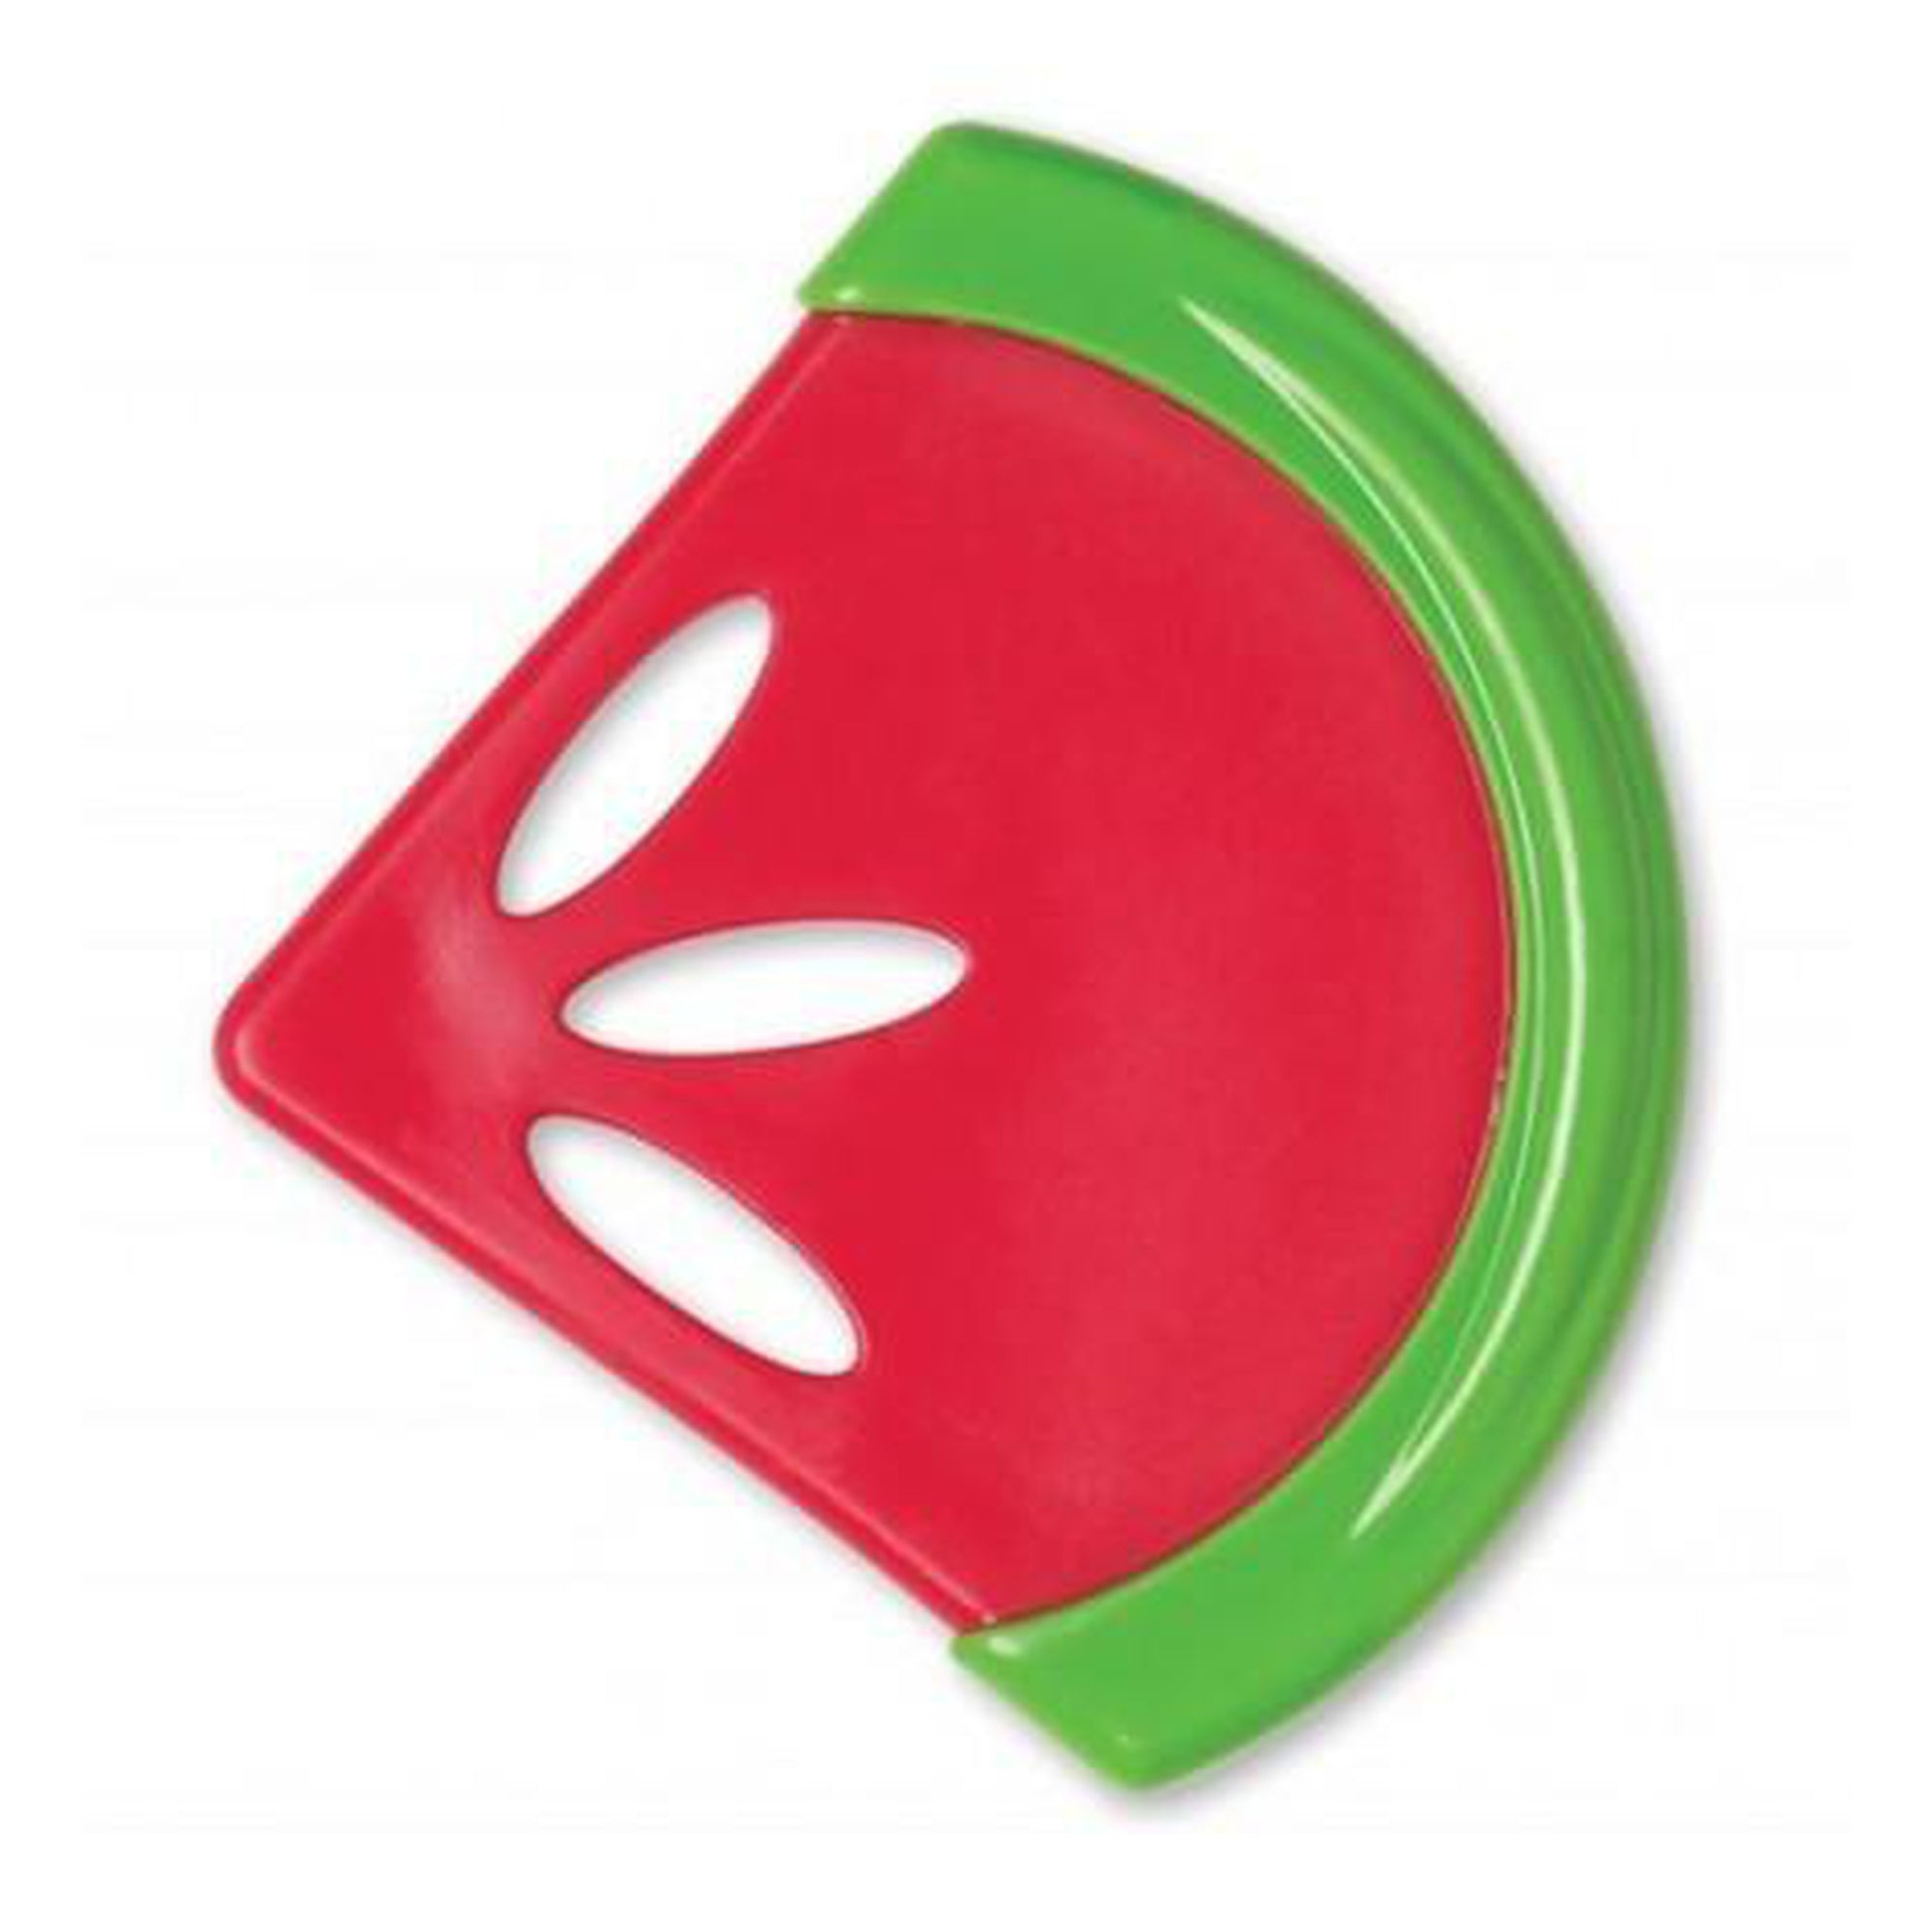 Dr. Brown's Soothing Teether Coolees - Watermelon-Teether-Mother and Baby Shop Kenya's #1 Online Baby Shop